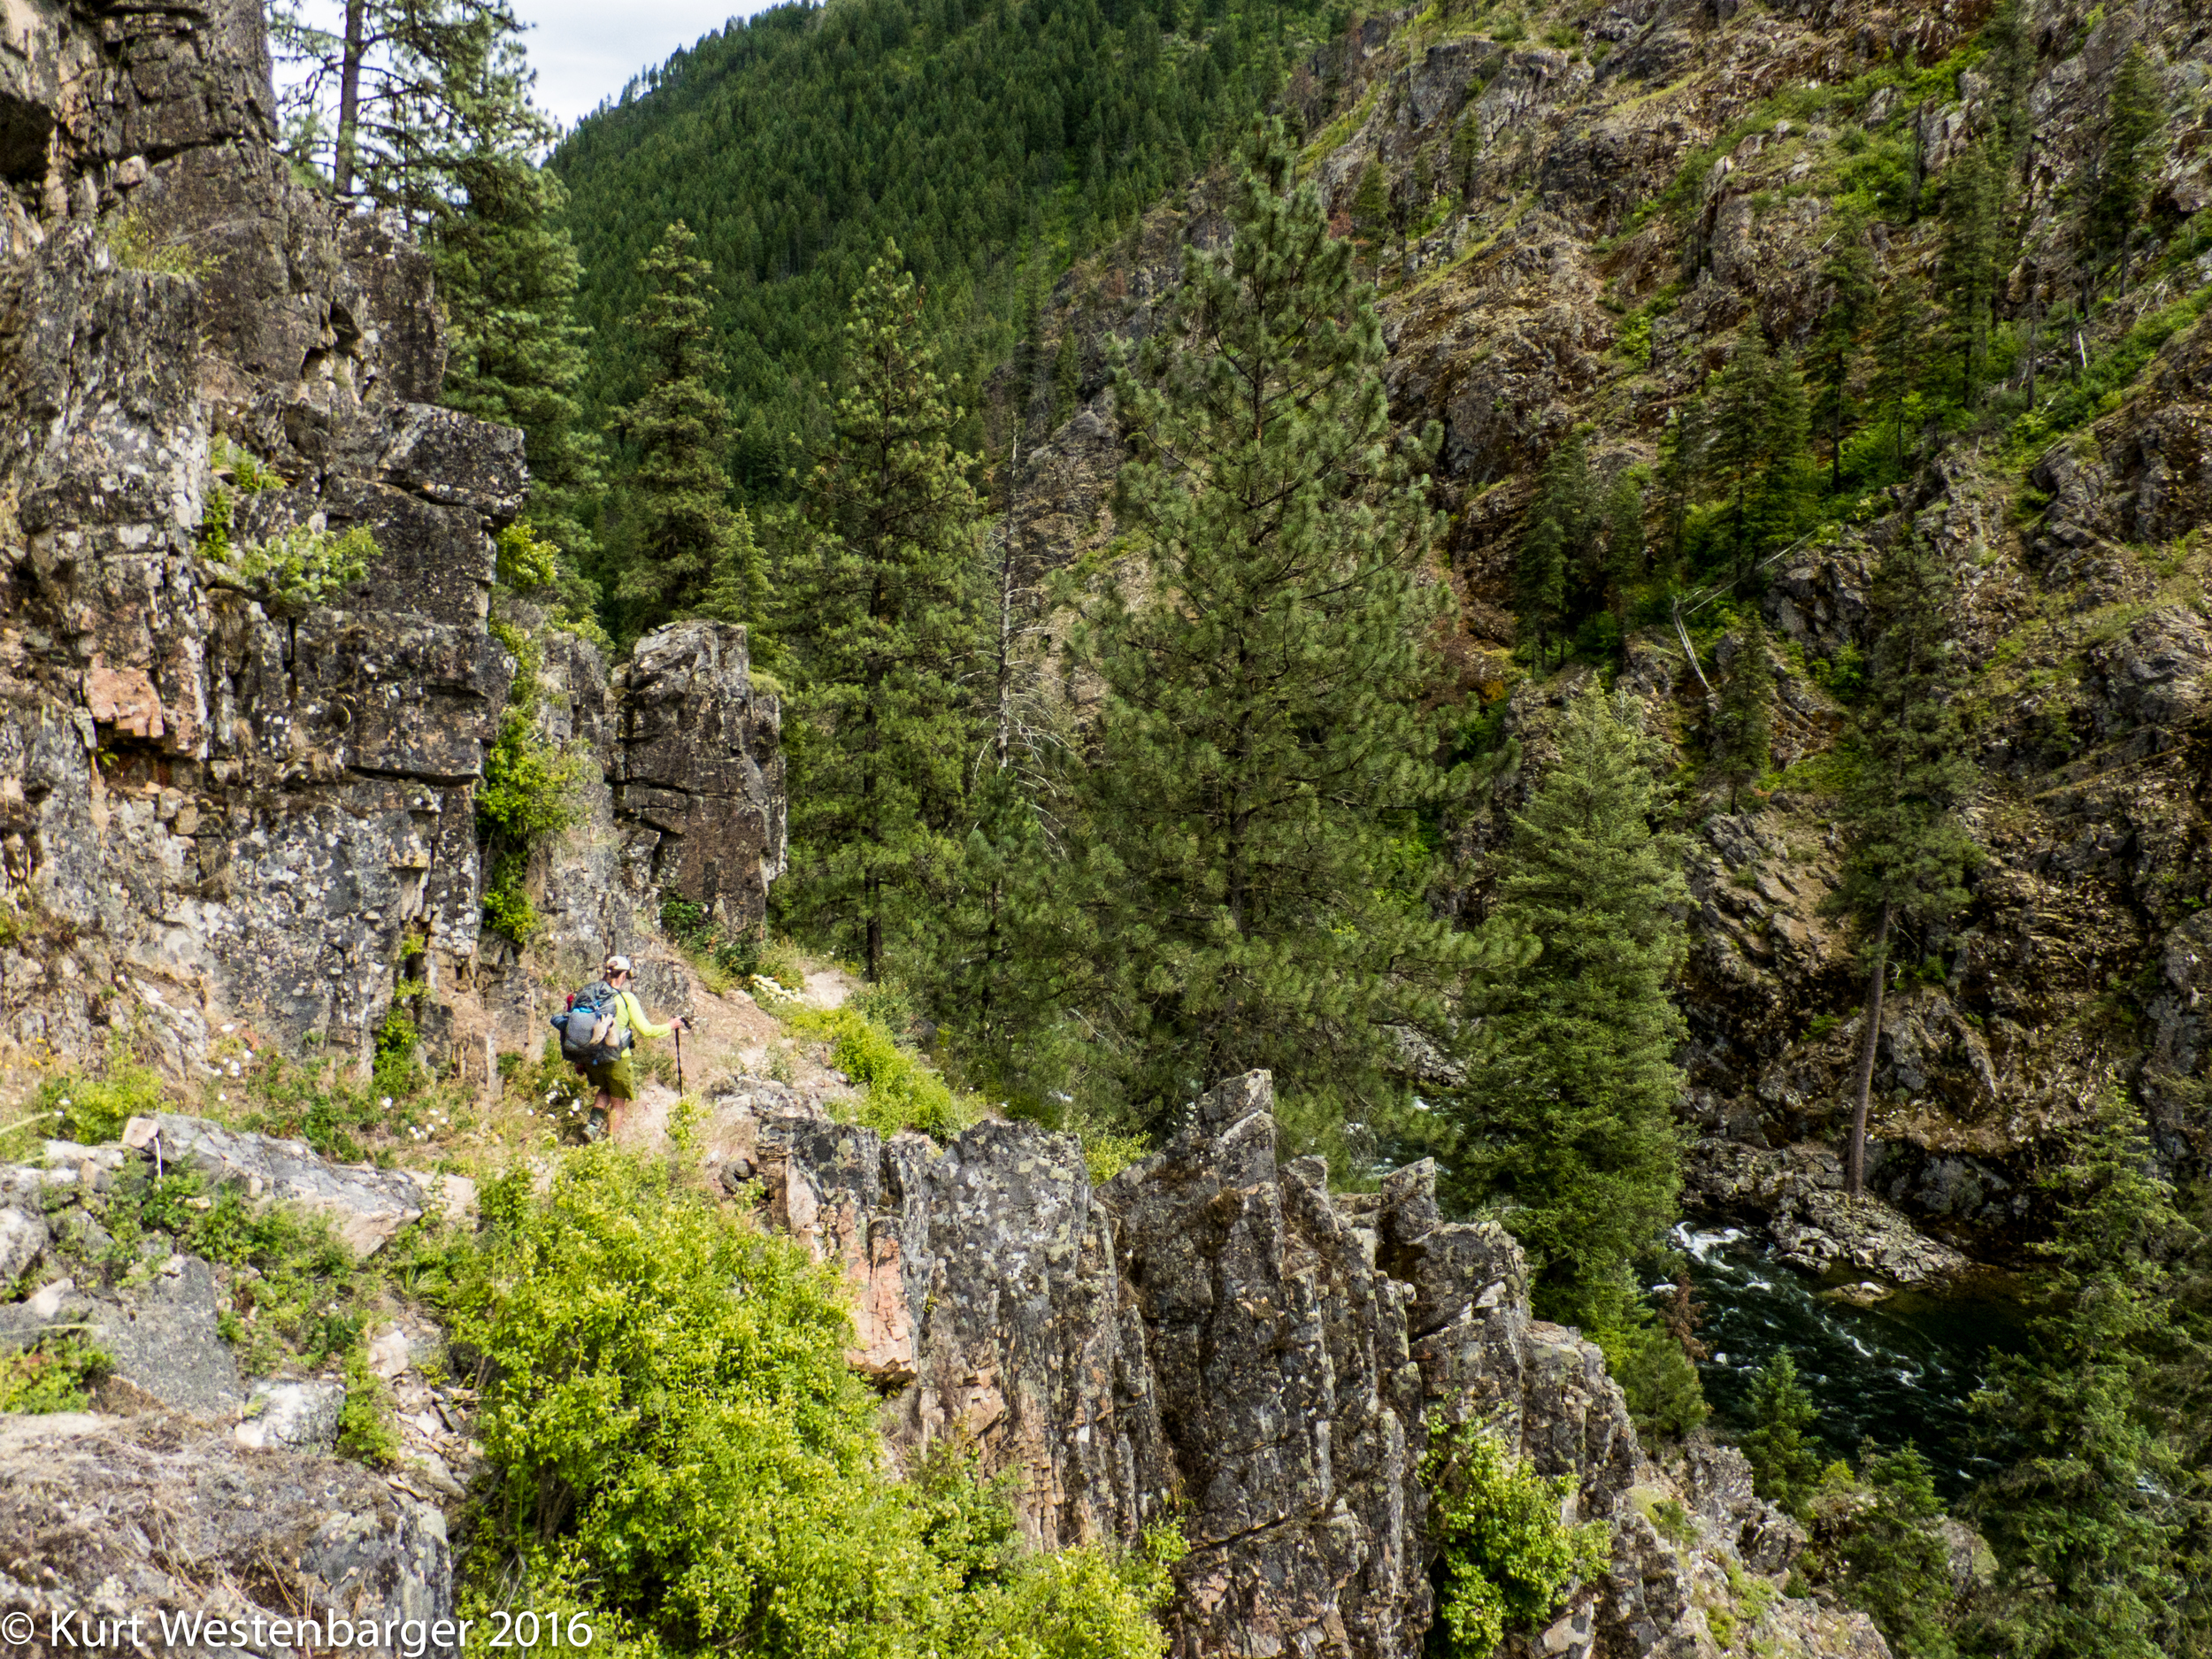 The trail traverses several cliff faces on this route.